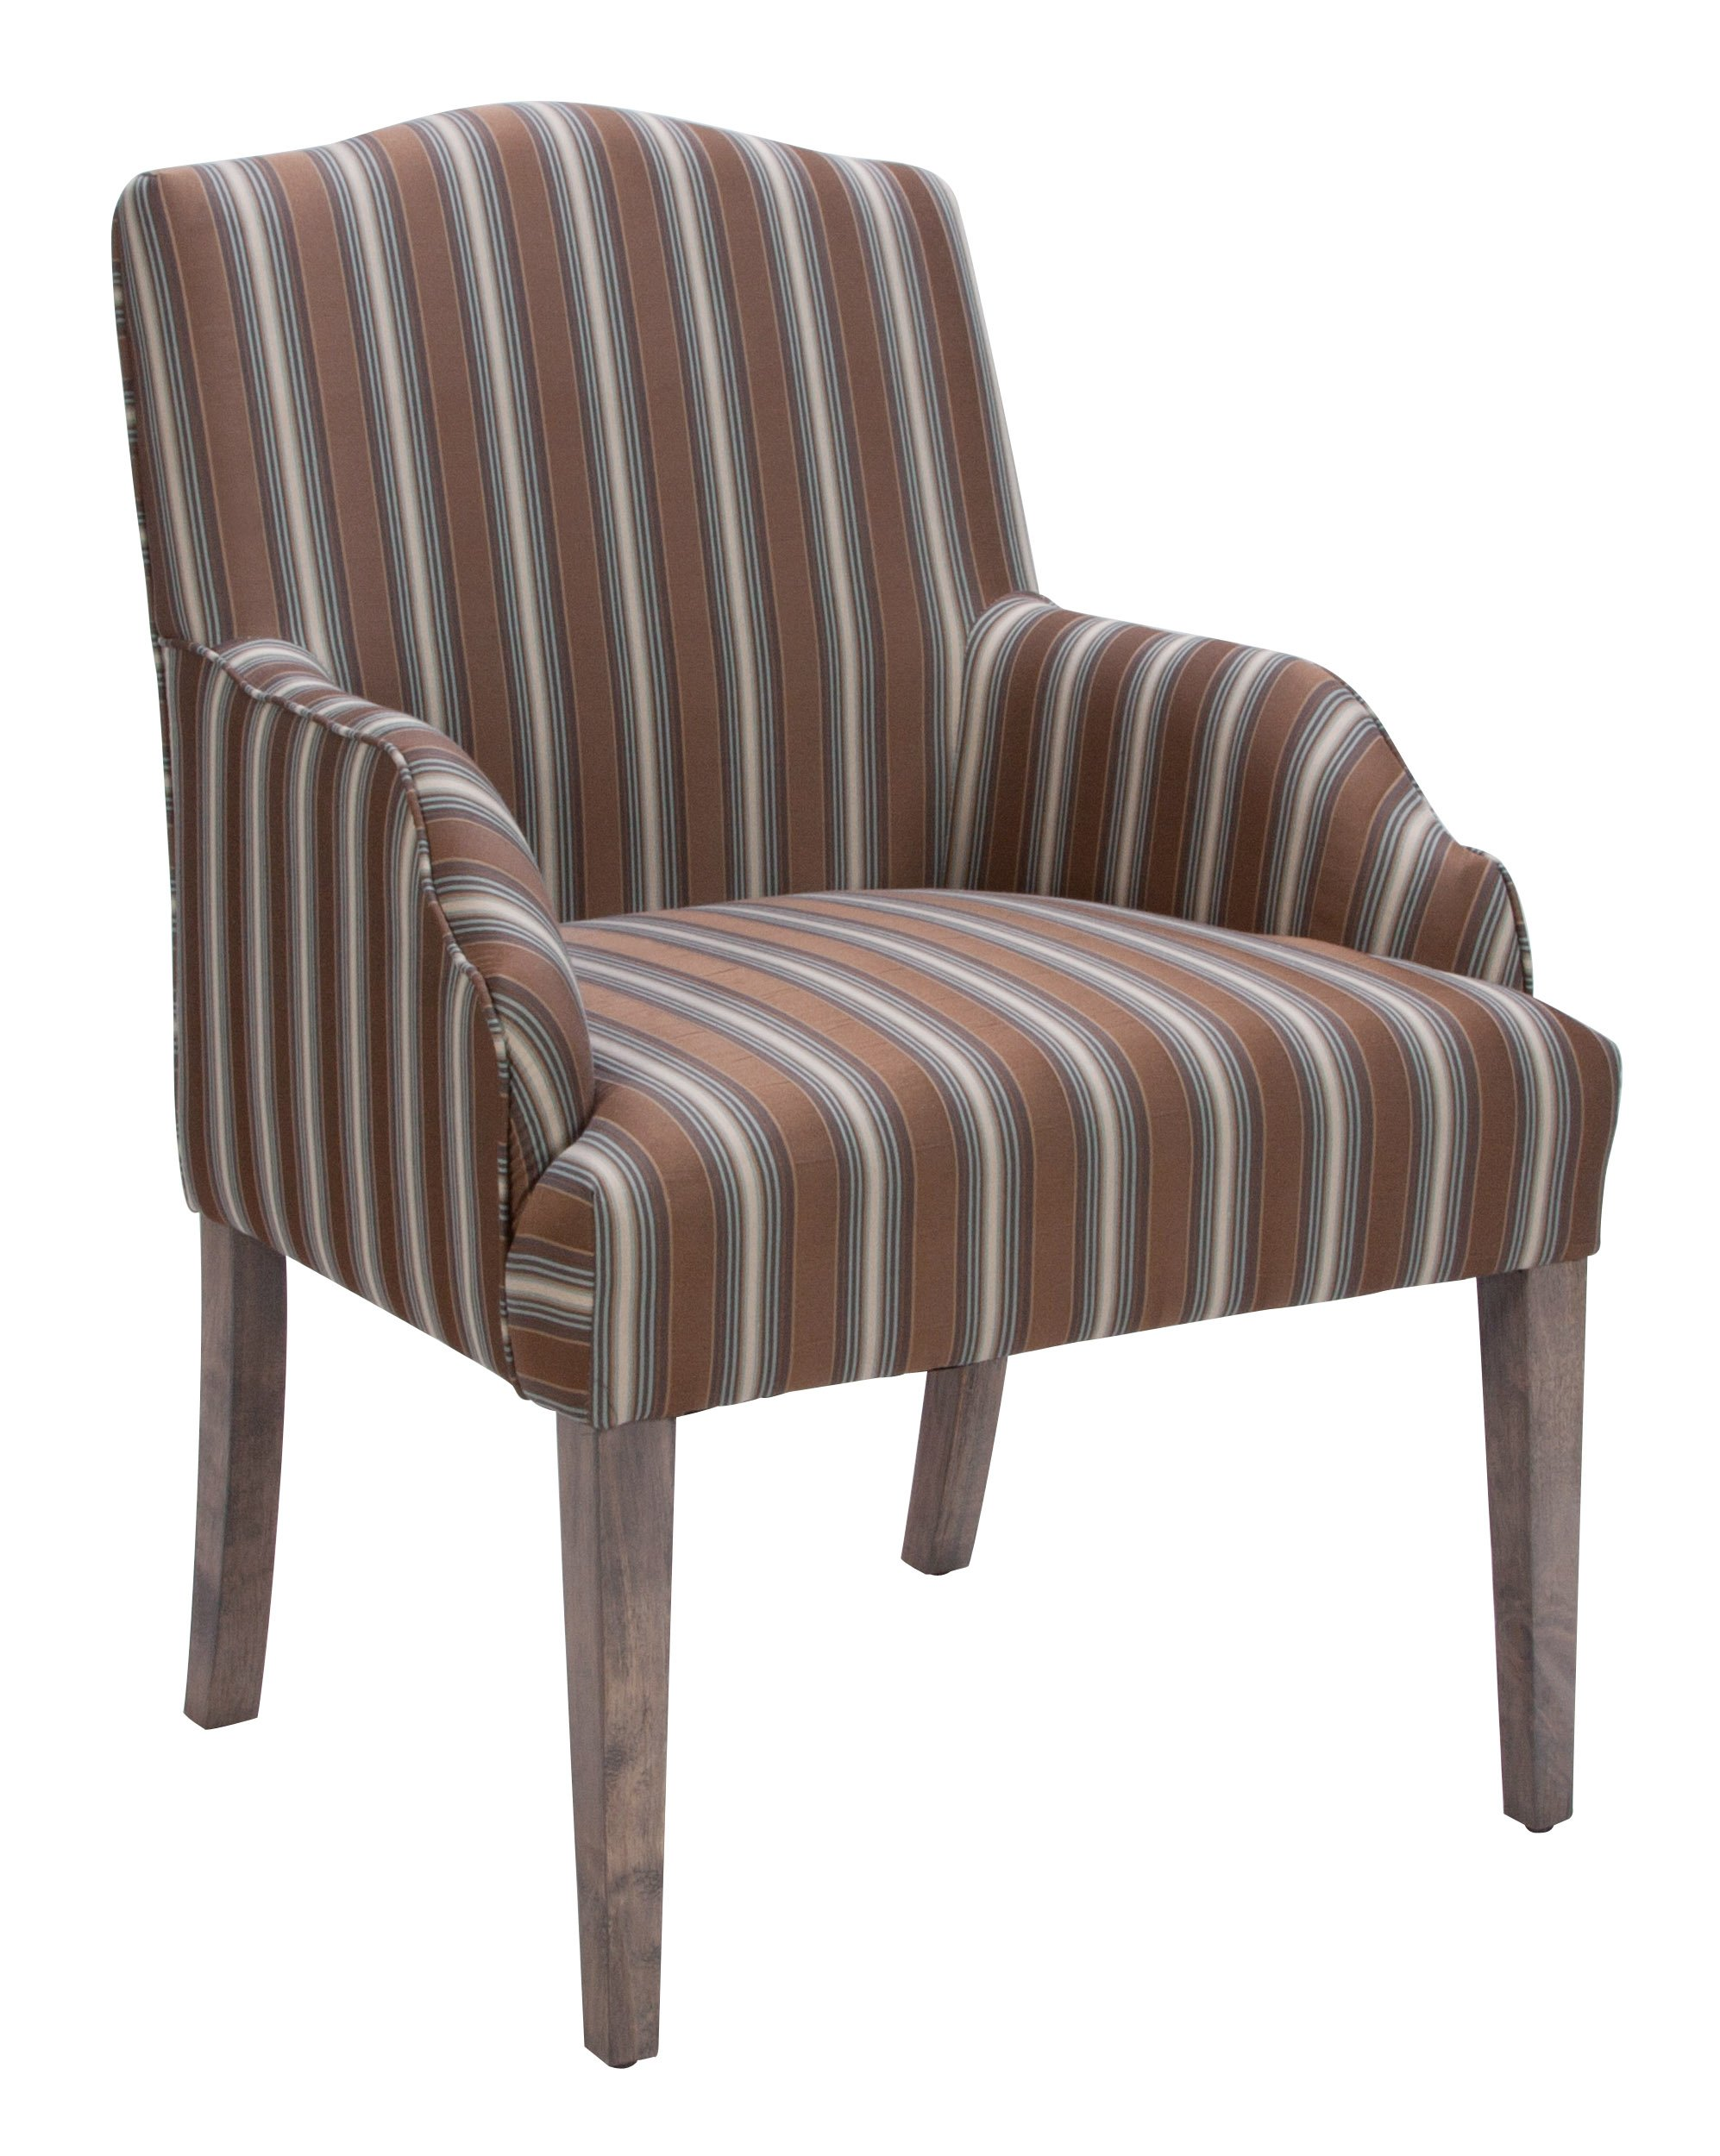 fabrics for chairs striped revolving chair olx homelegance 2516a accent arm stripe fabric set of